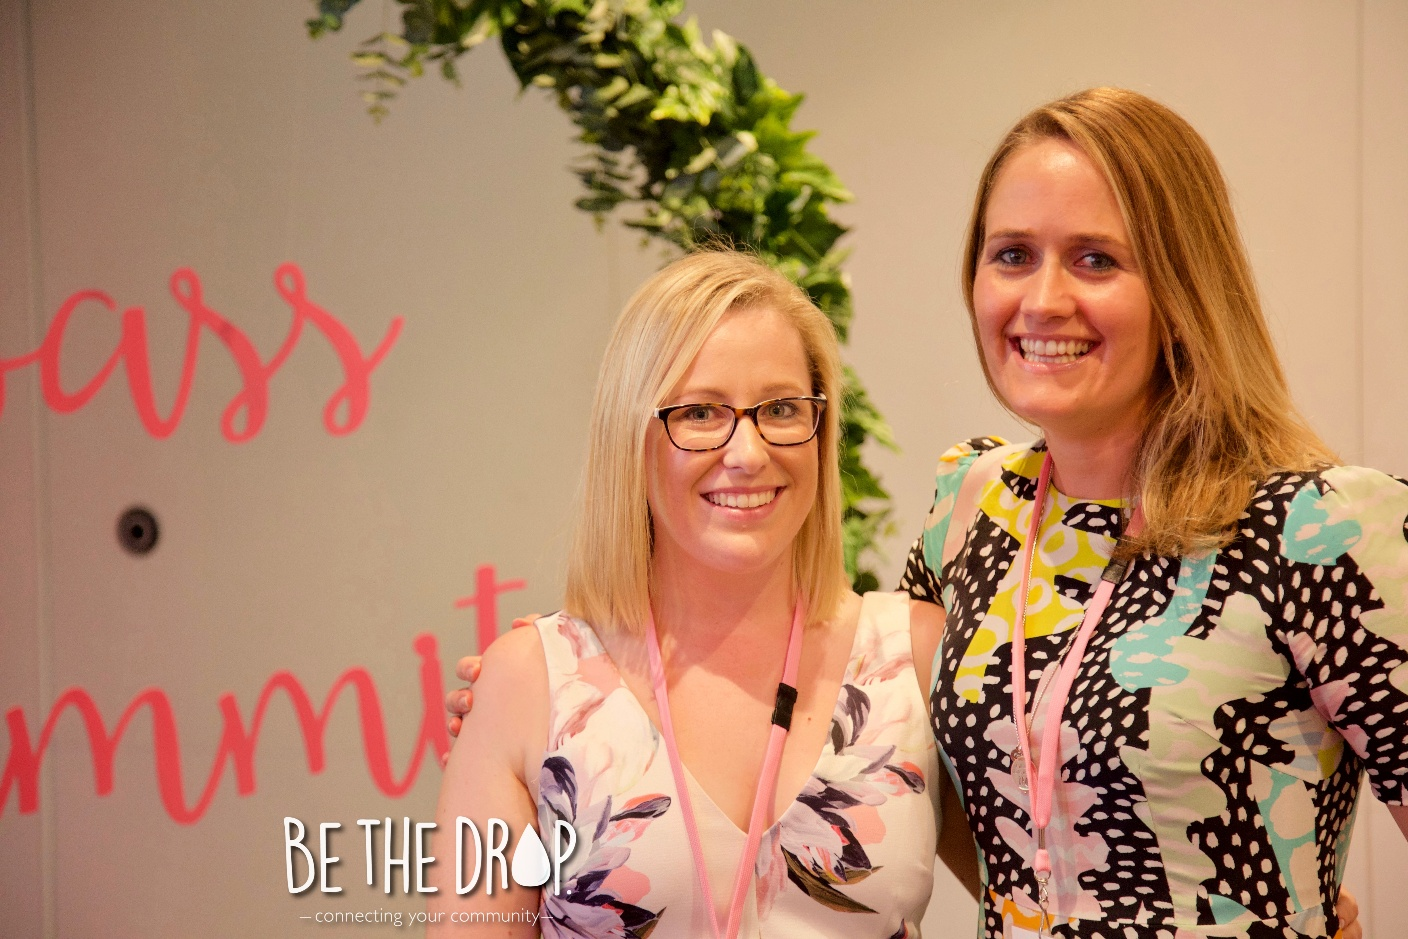 Inspiring women to rise and thrive together at Sass Summit 2017